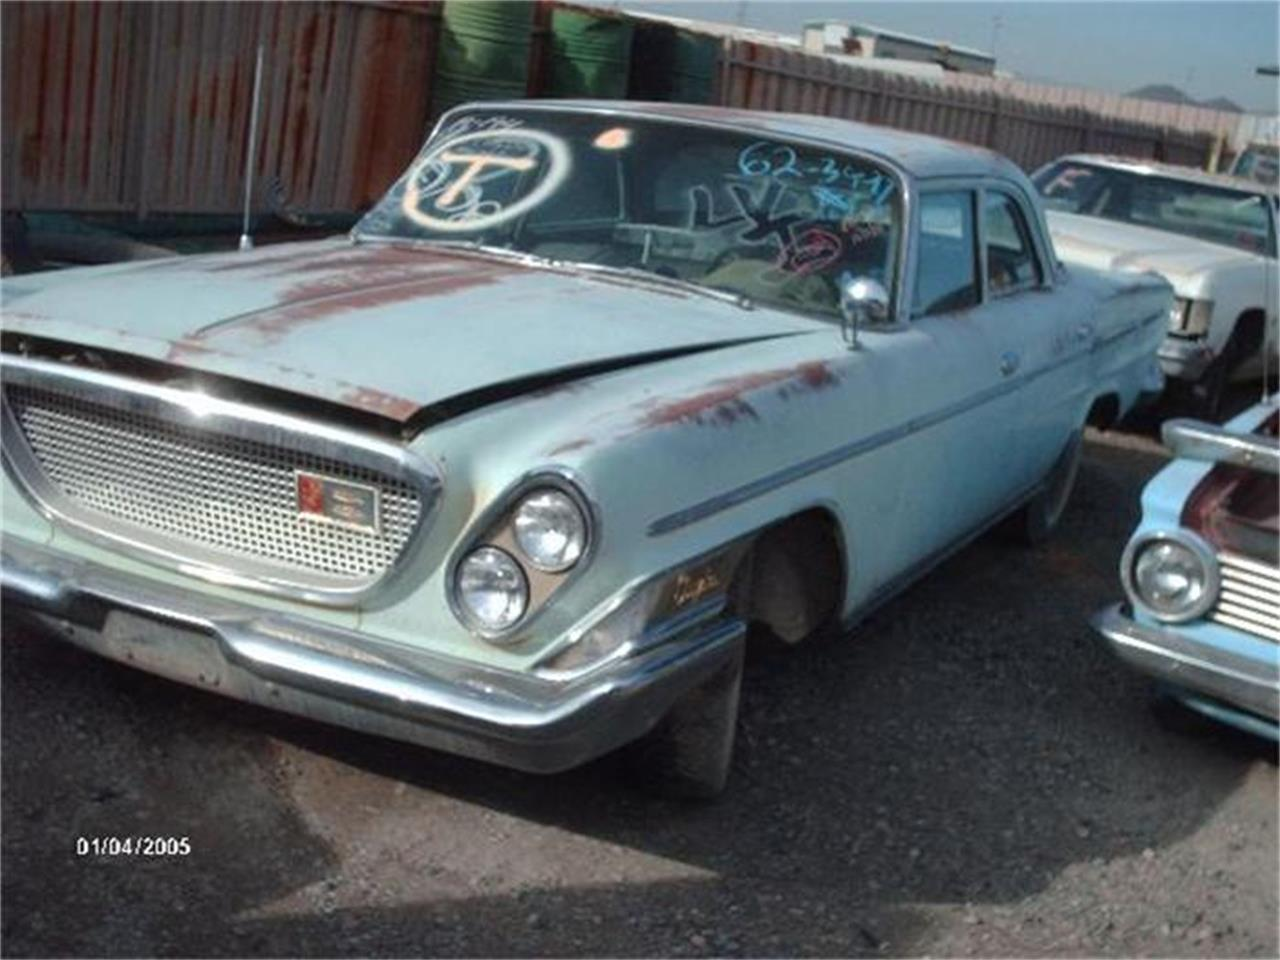 Large Picture of Classic '62 Chrysler Newport - $3,000.00 - 8IEO